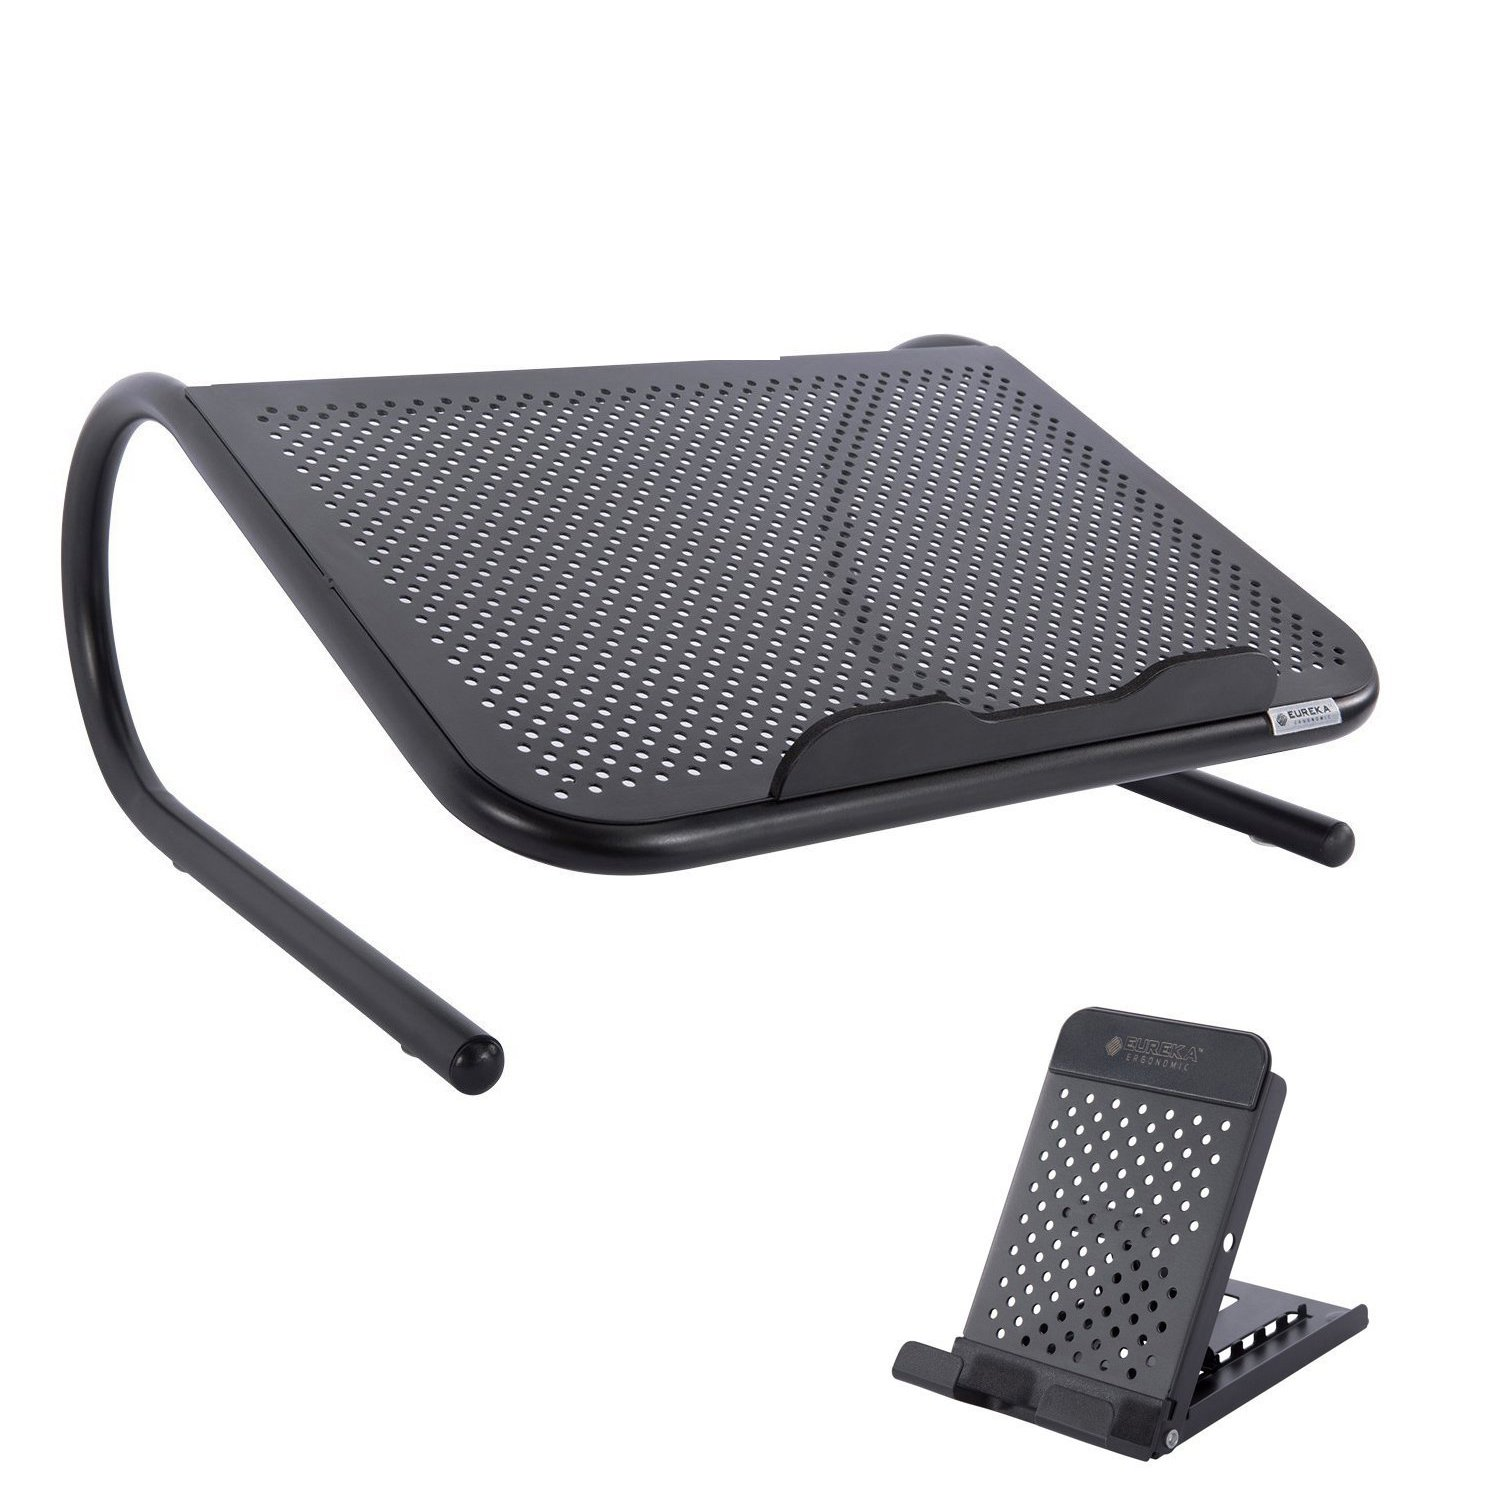 Eureka Ergonomic Ventilated Laptop Riser Stand with Free Adjustable Phone Stand, Metal, Black